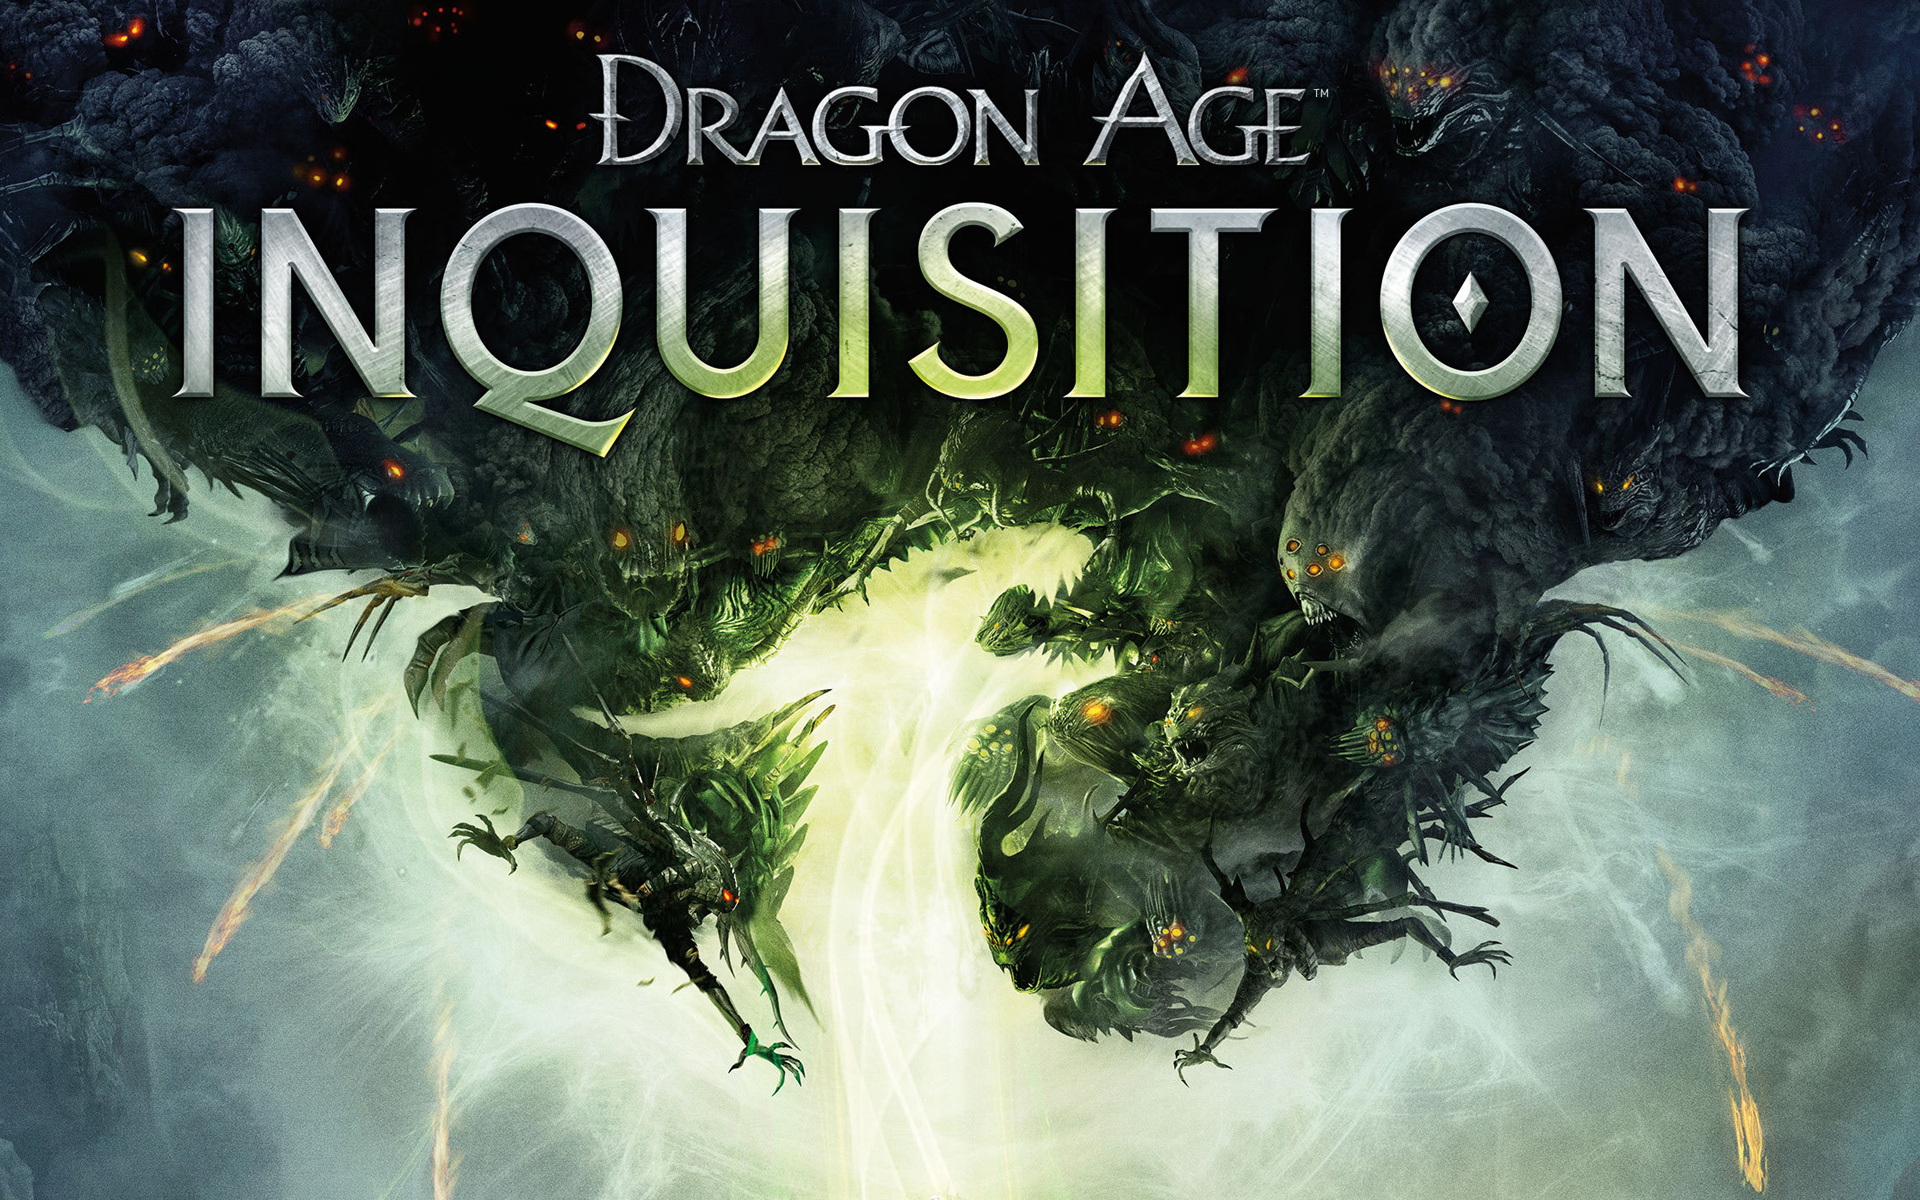 HD Wallpapers Dragon Age Inquisition